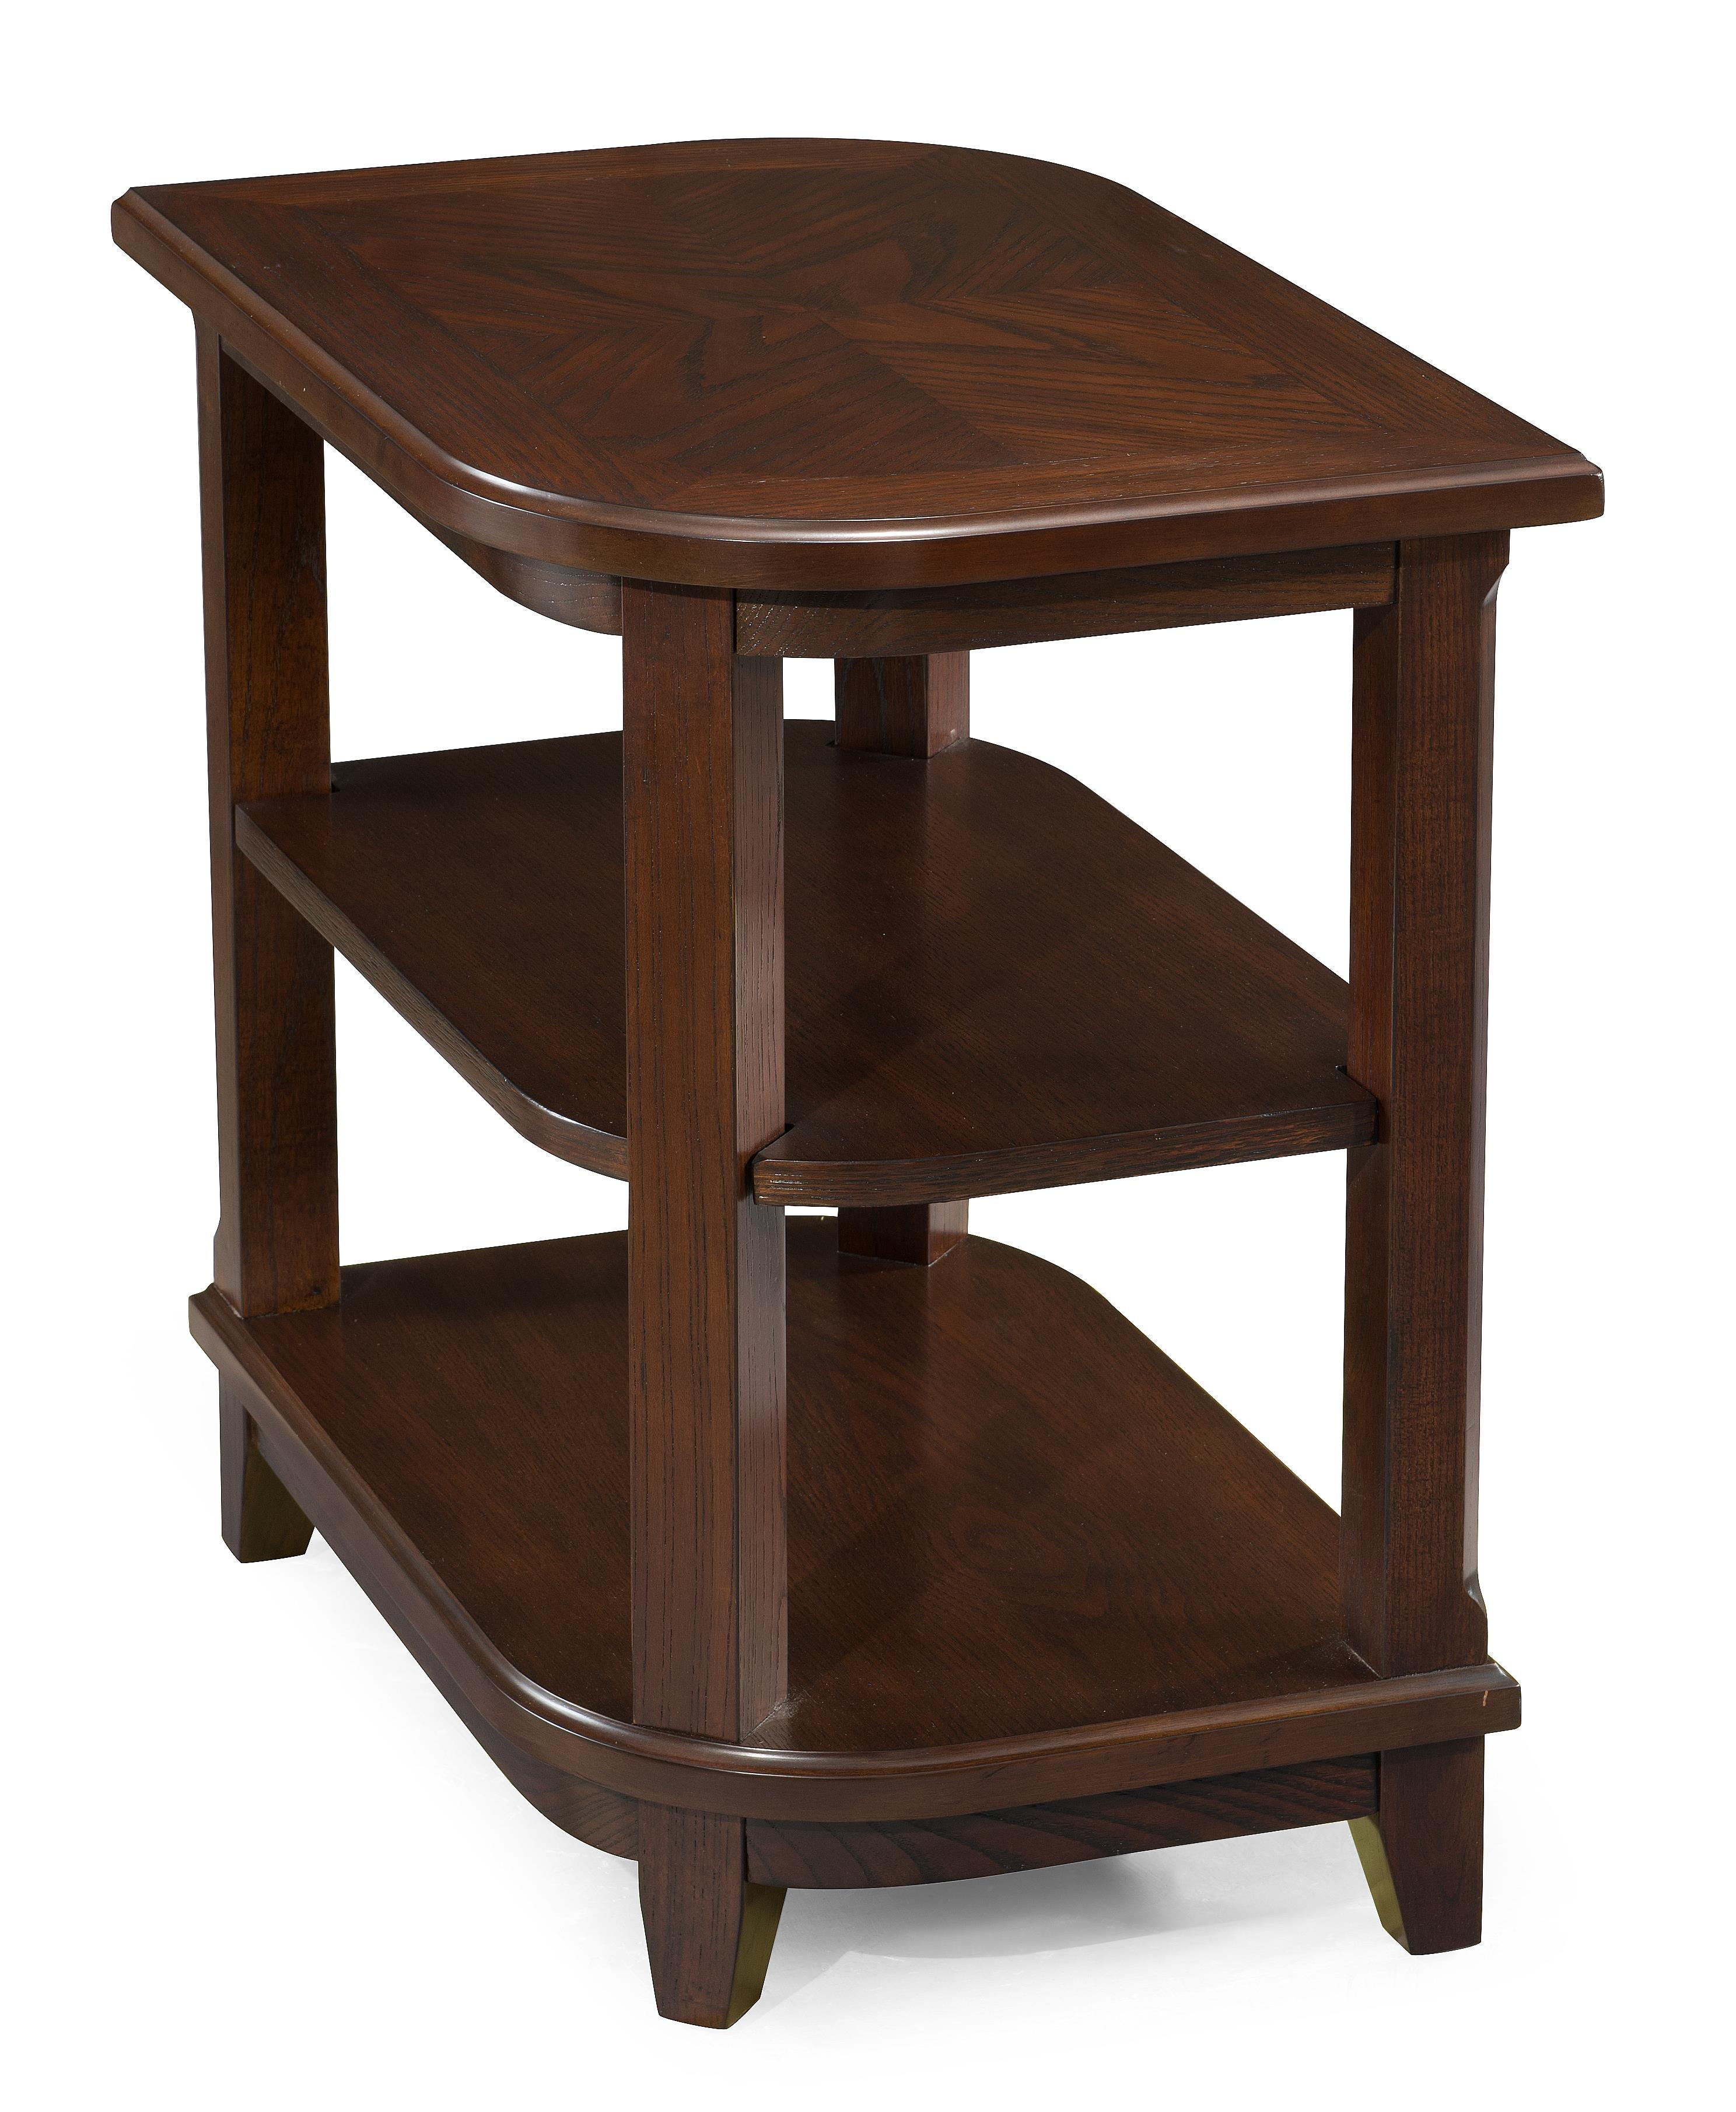 Magnussen Home Madera Rectangular Accent Table - Item Number: T2820-31